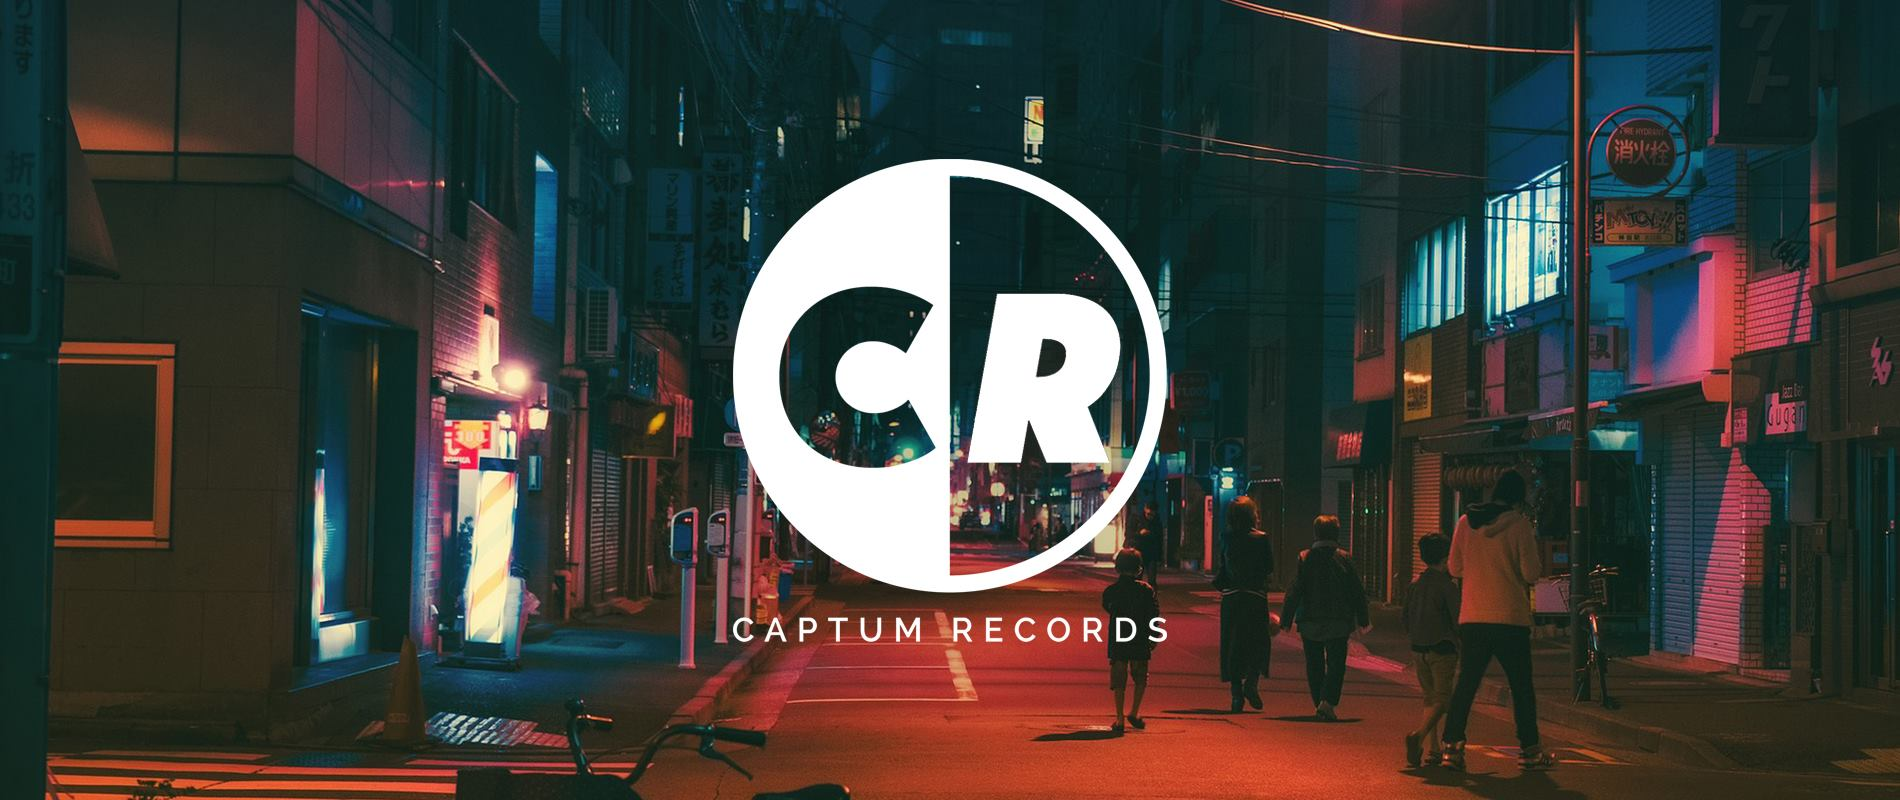 Captum Records